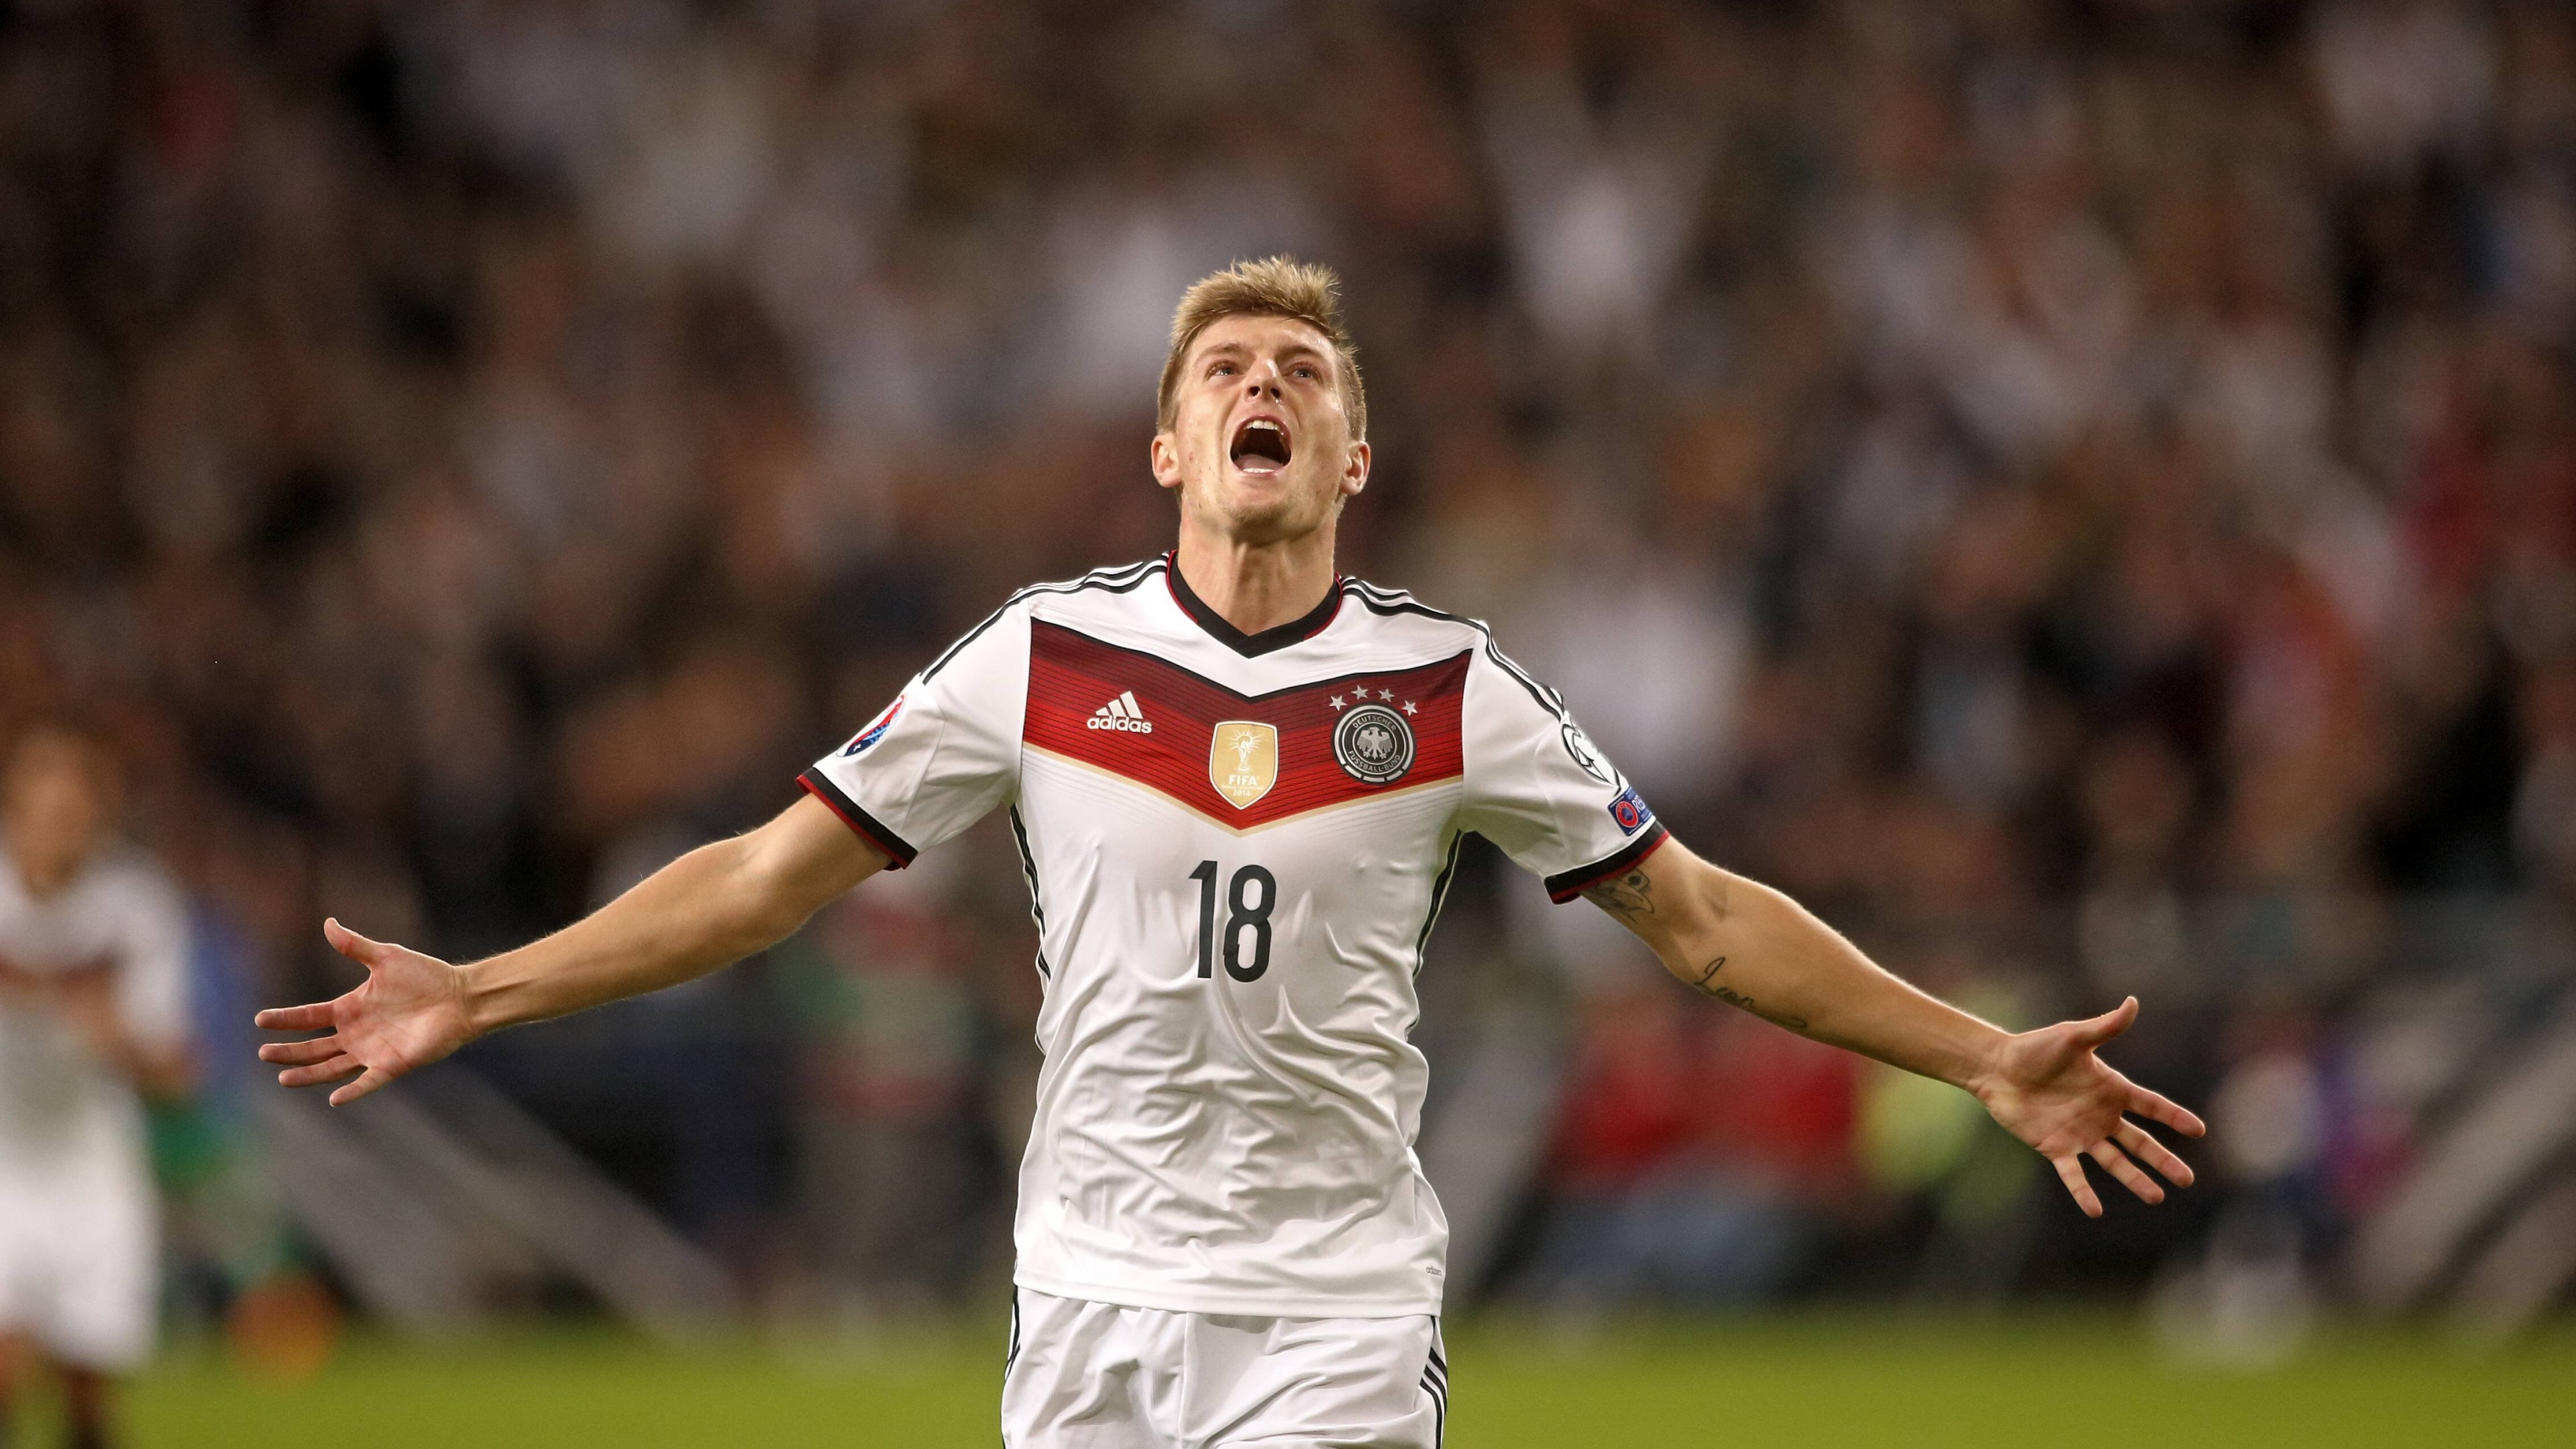 Best Football Quotes Wallpapers Wallpaper Football Toni Kroos Soccer The Best Players